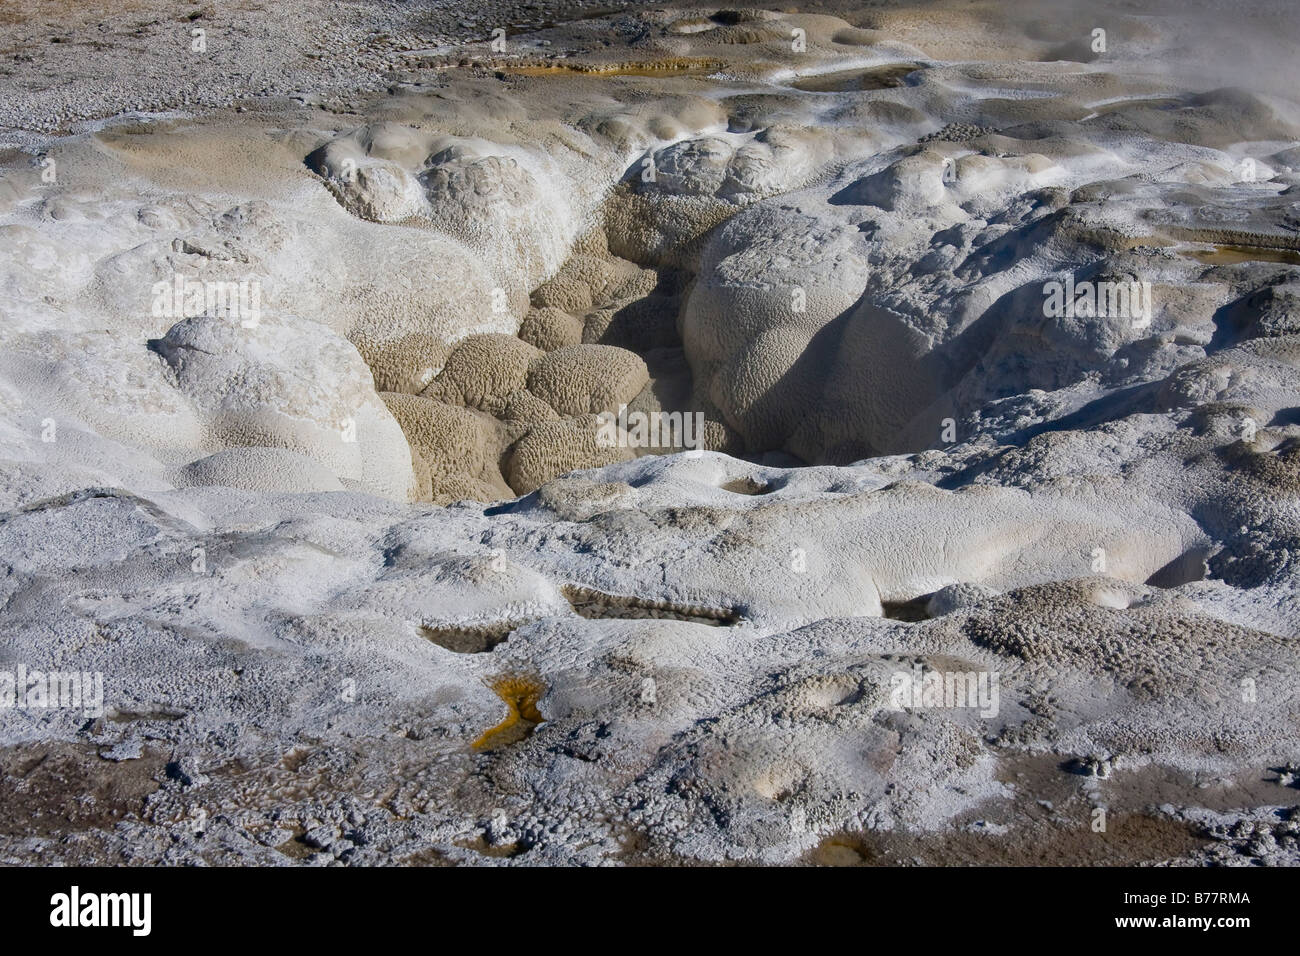 Interesting textures and rock formations surrounding a geyser vent in Yellowstone National Park - Stock Image